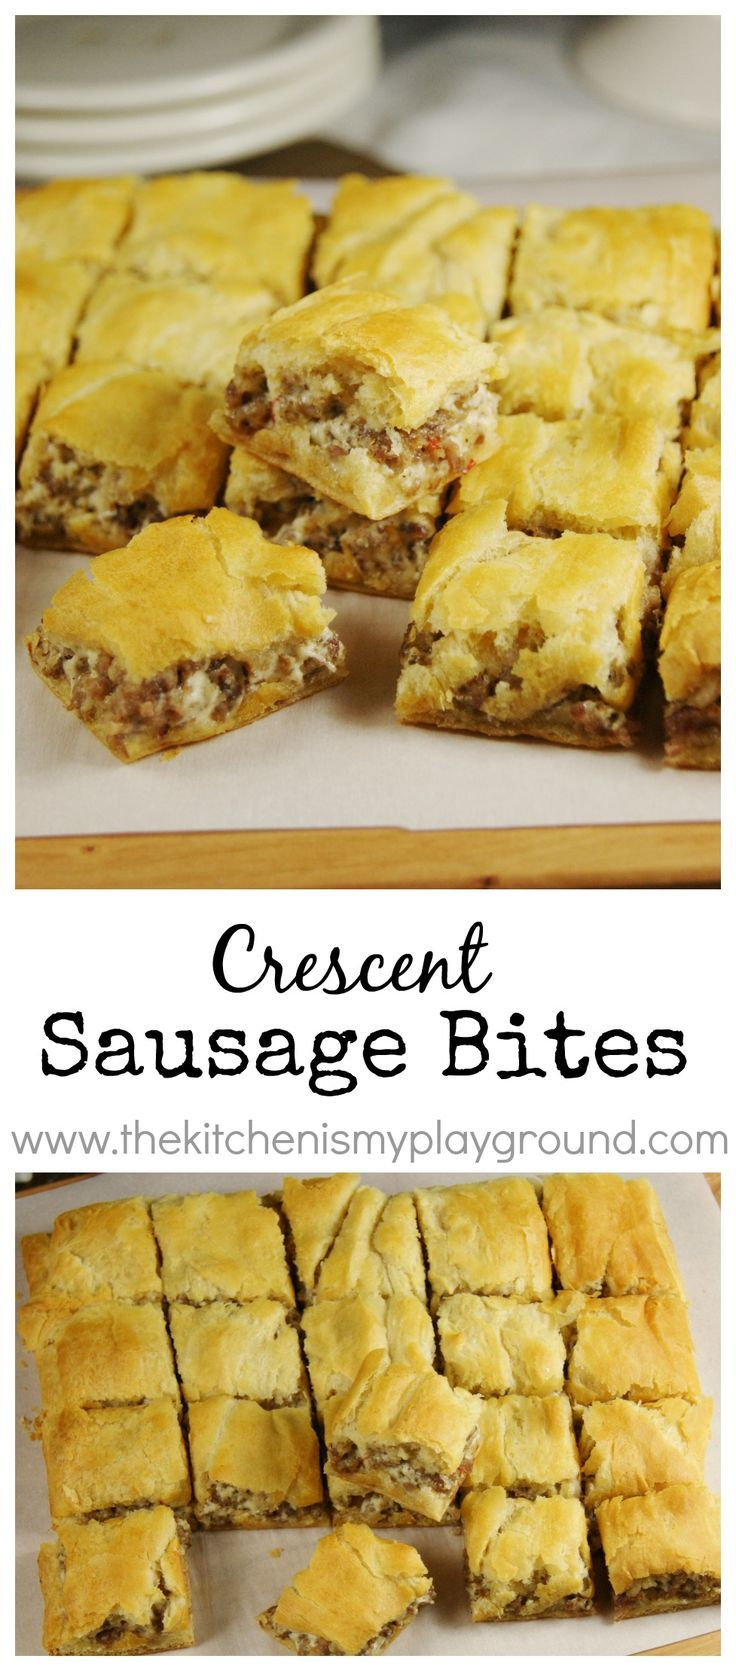 Crescent Sausage Bites ~ 3-ingredient super simple party favorite! www.thekitchenismyplayground.com